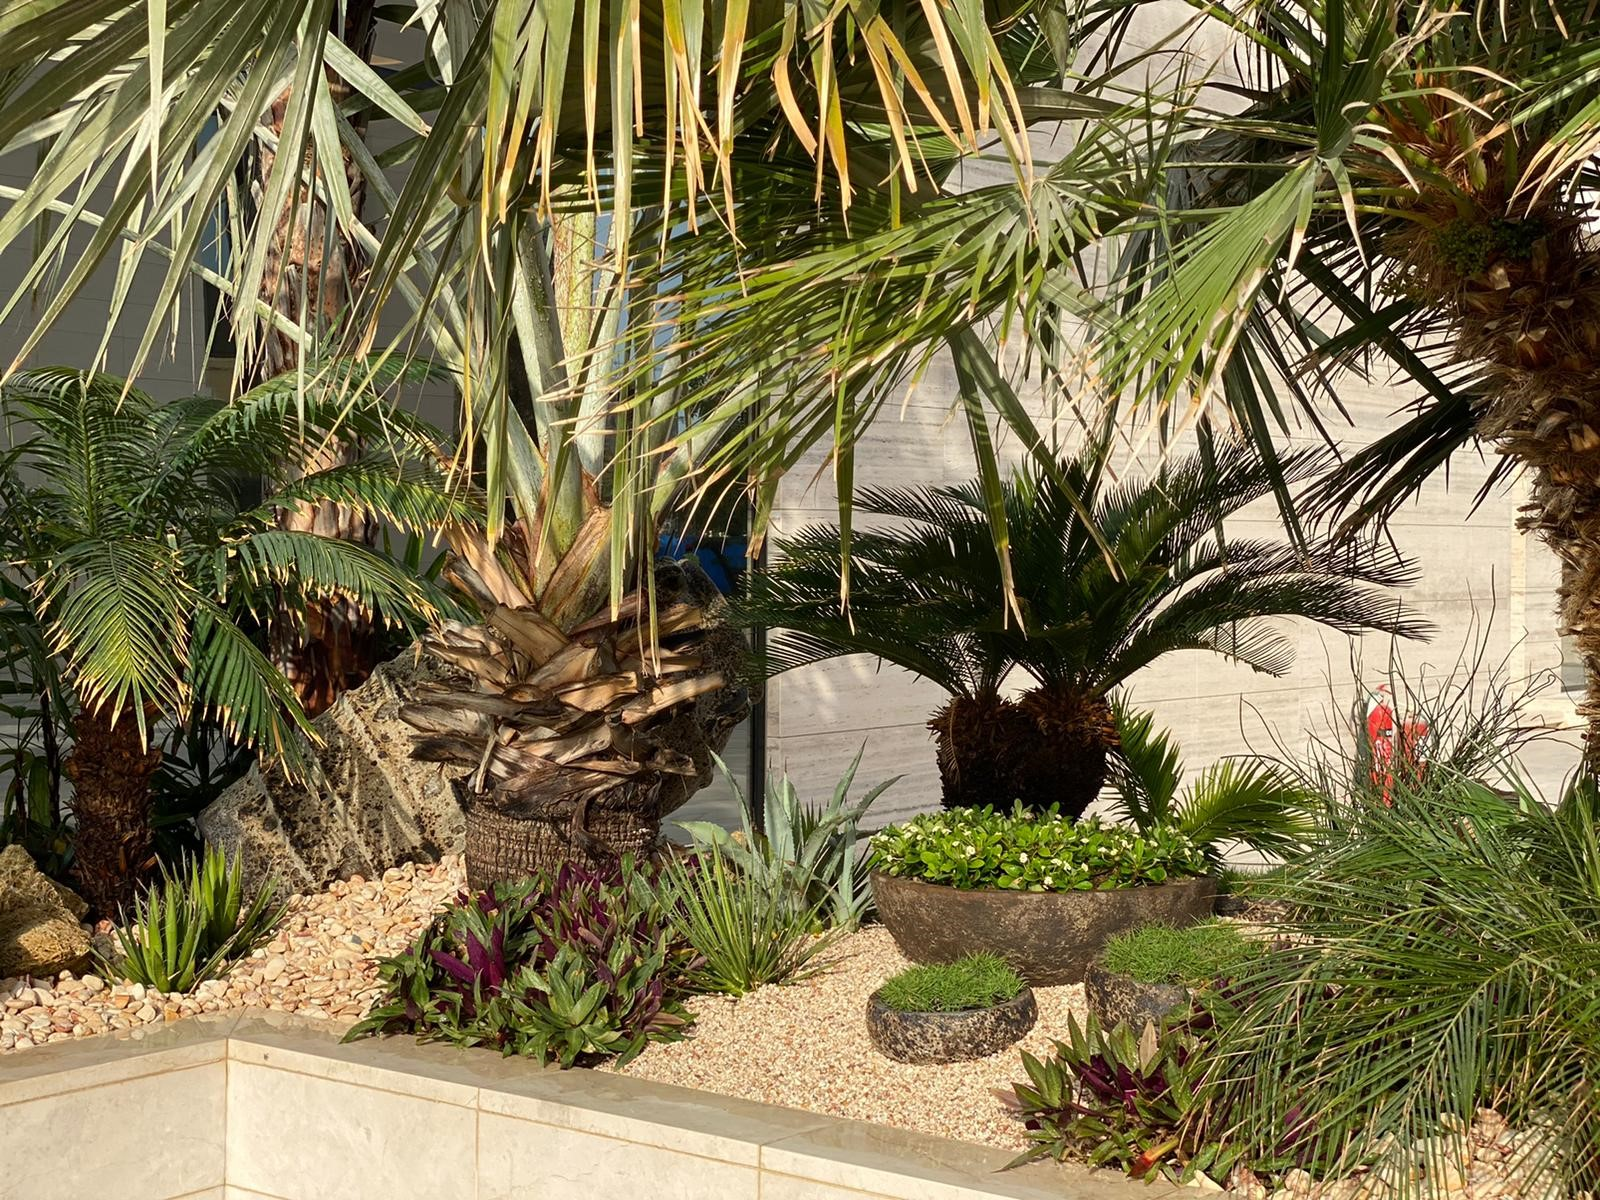 Palms, cacti and grasses